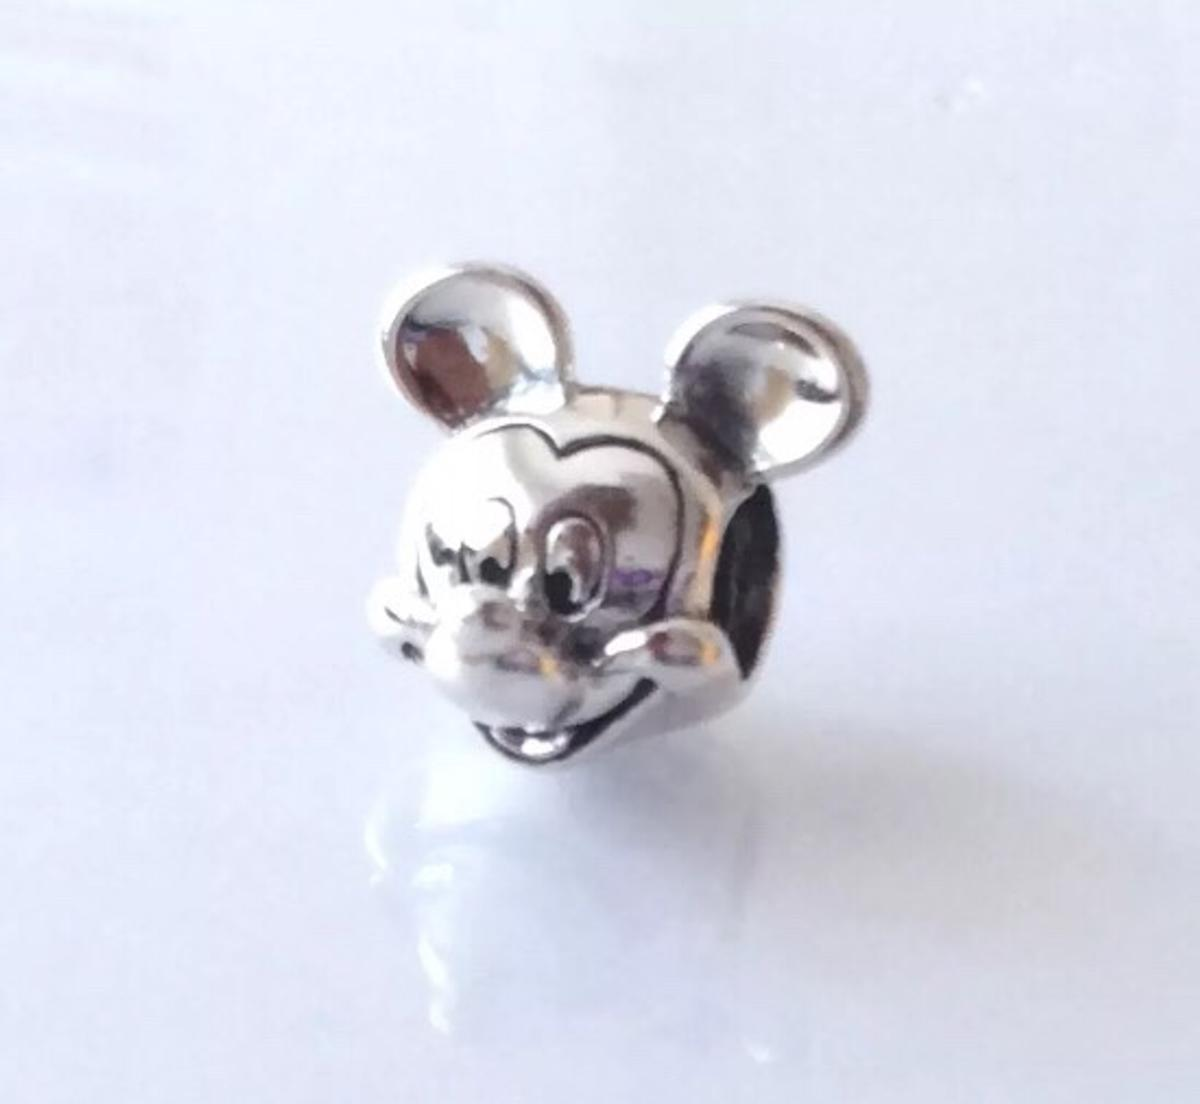 fcb3f1d20 DISNEY MICKEY MOUSE PANDORA CHARM 791586 in NG17-Ashfield for £20.00 ...